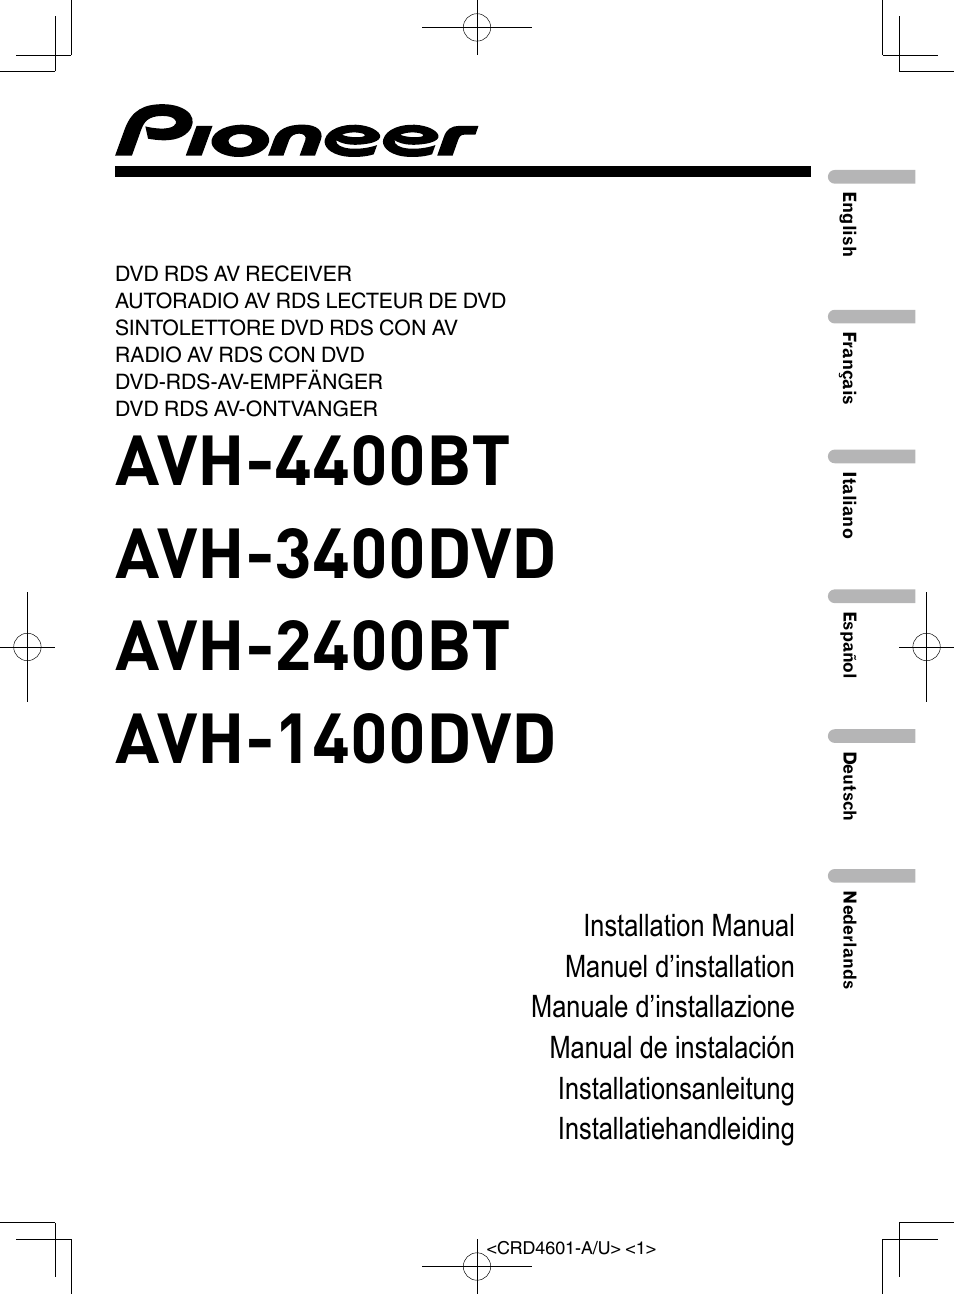 pioneer avh 1400dvd user manual 76 pages also for avh. Black Bedroom Furniture Sets. Home Design Ideas